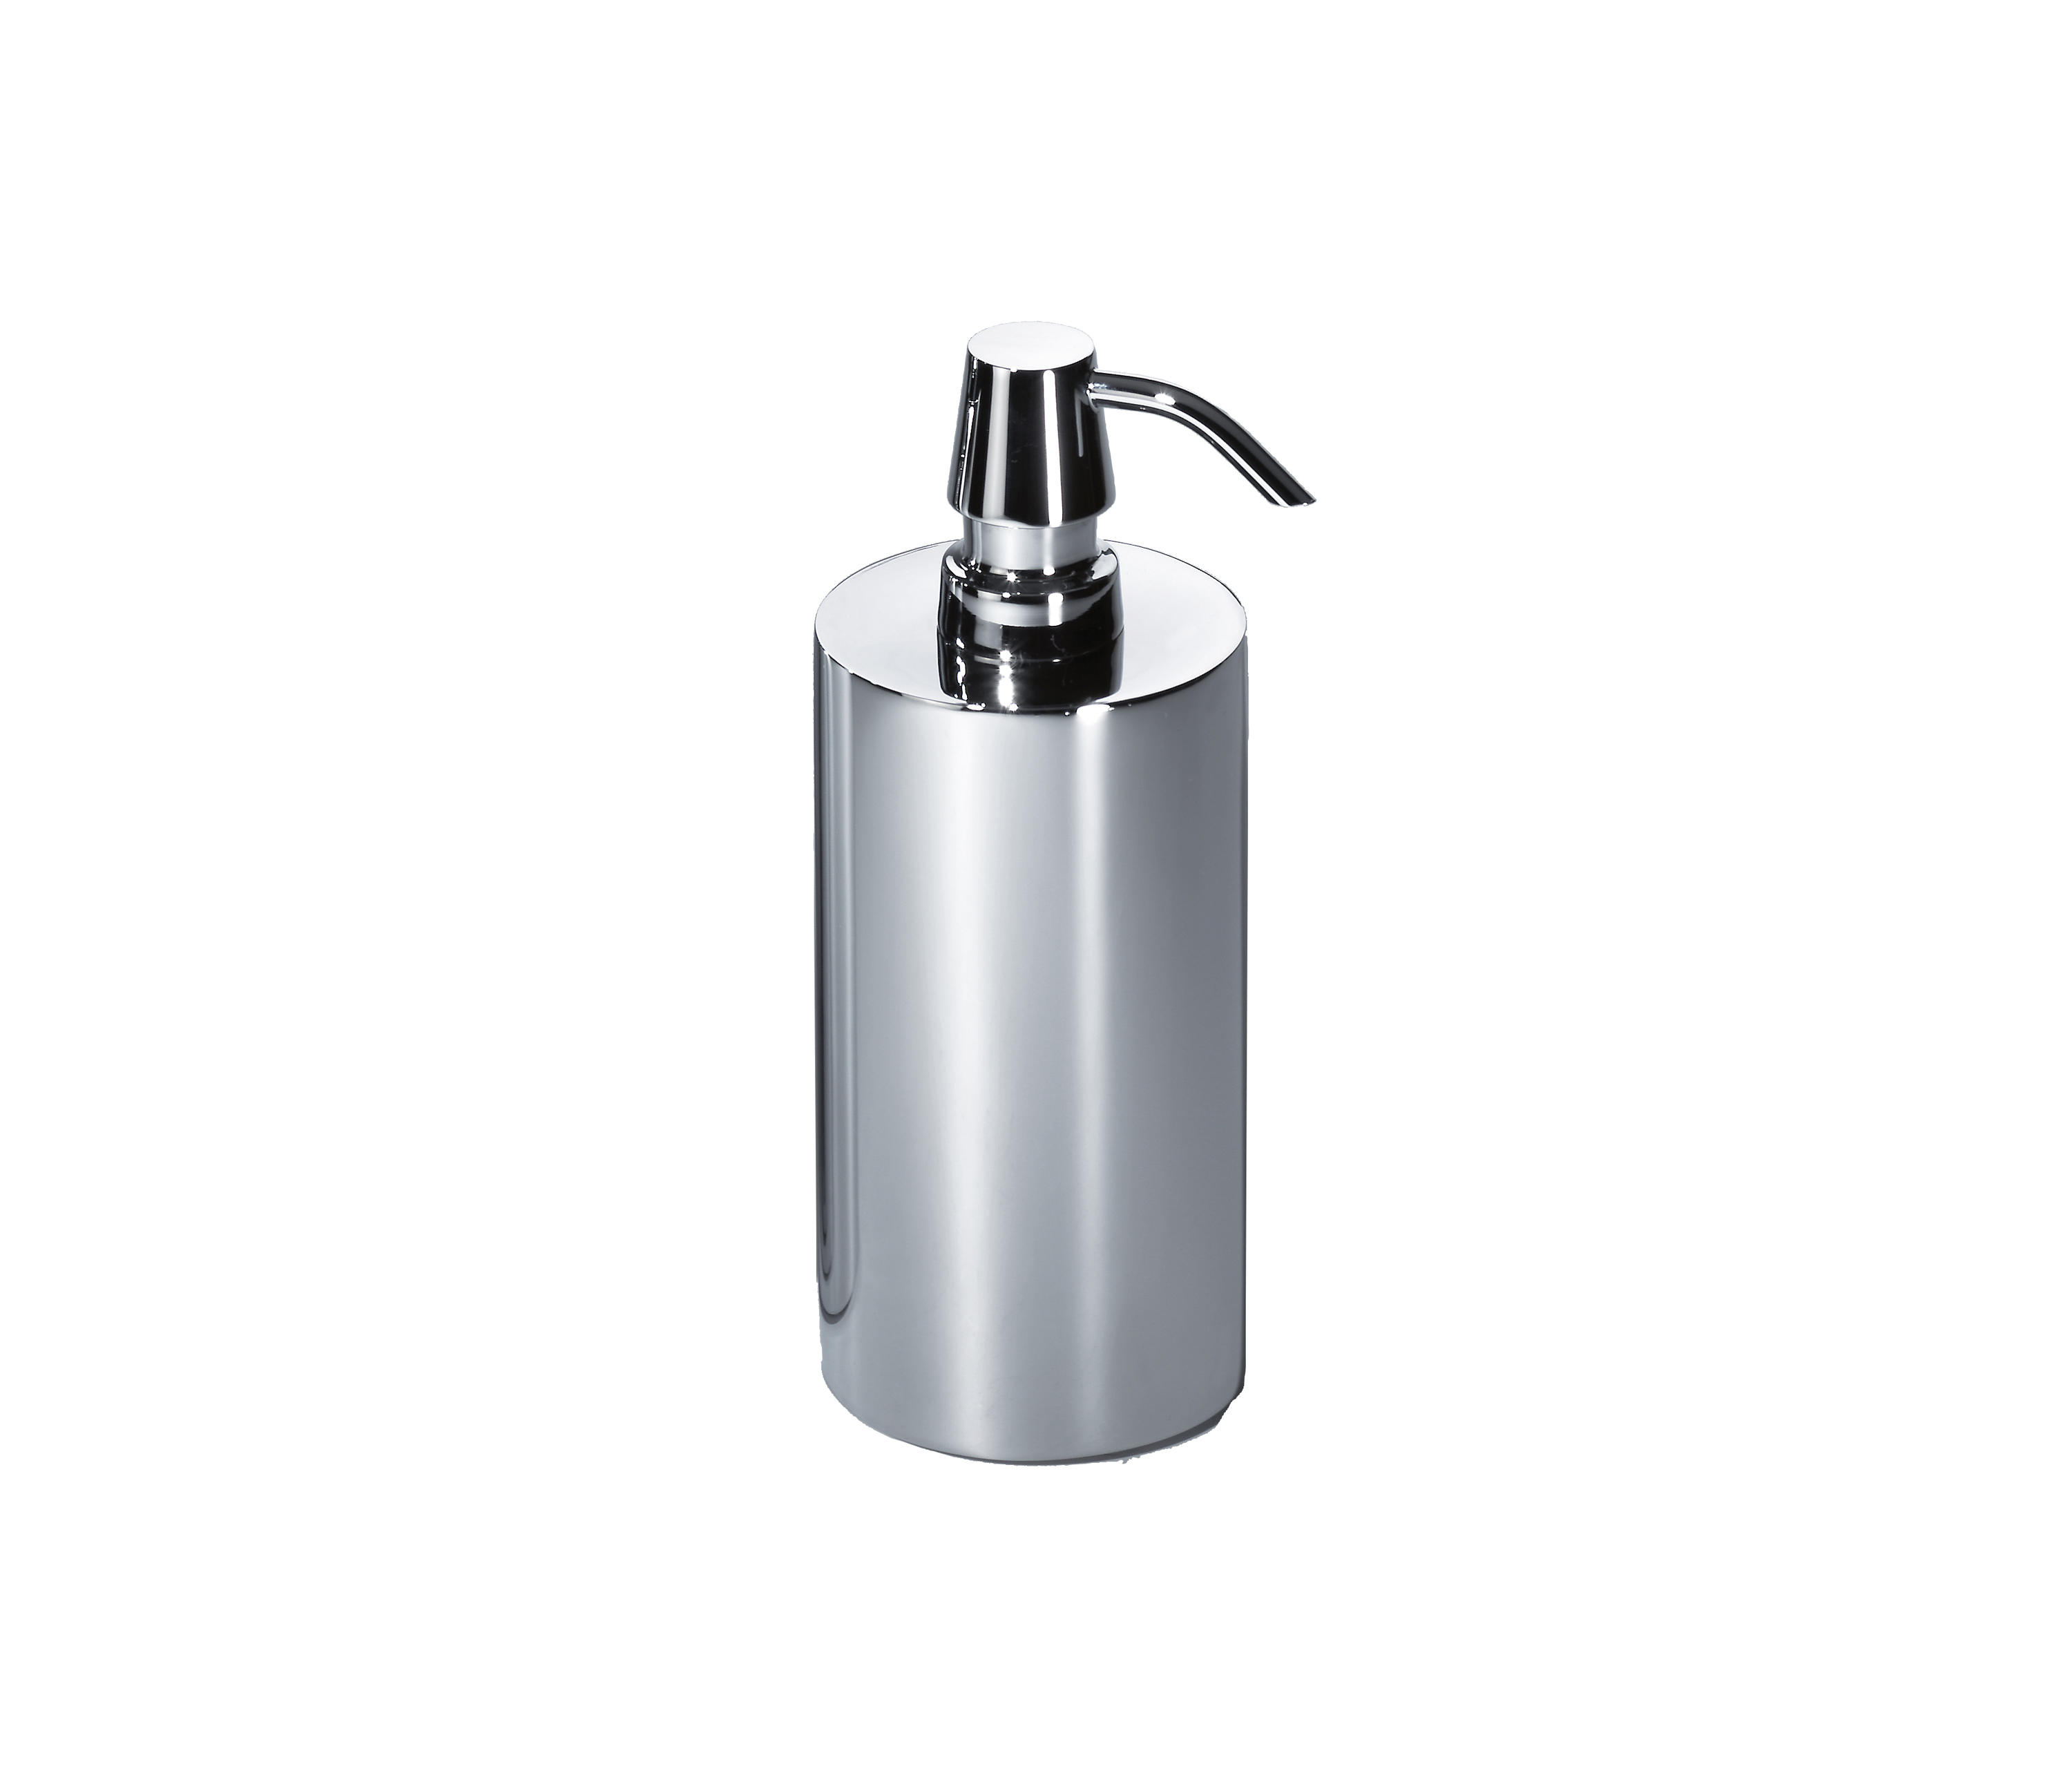 DW 440 - Soap dispensers from DECOR WALTHER   Architonic